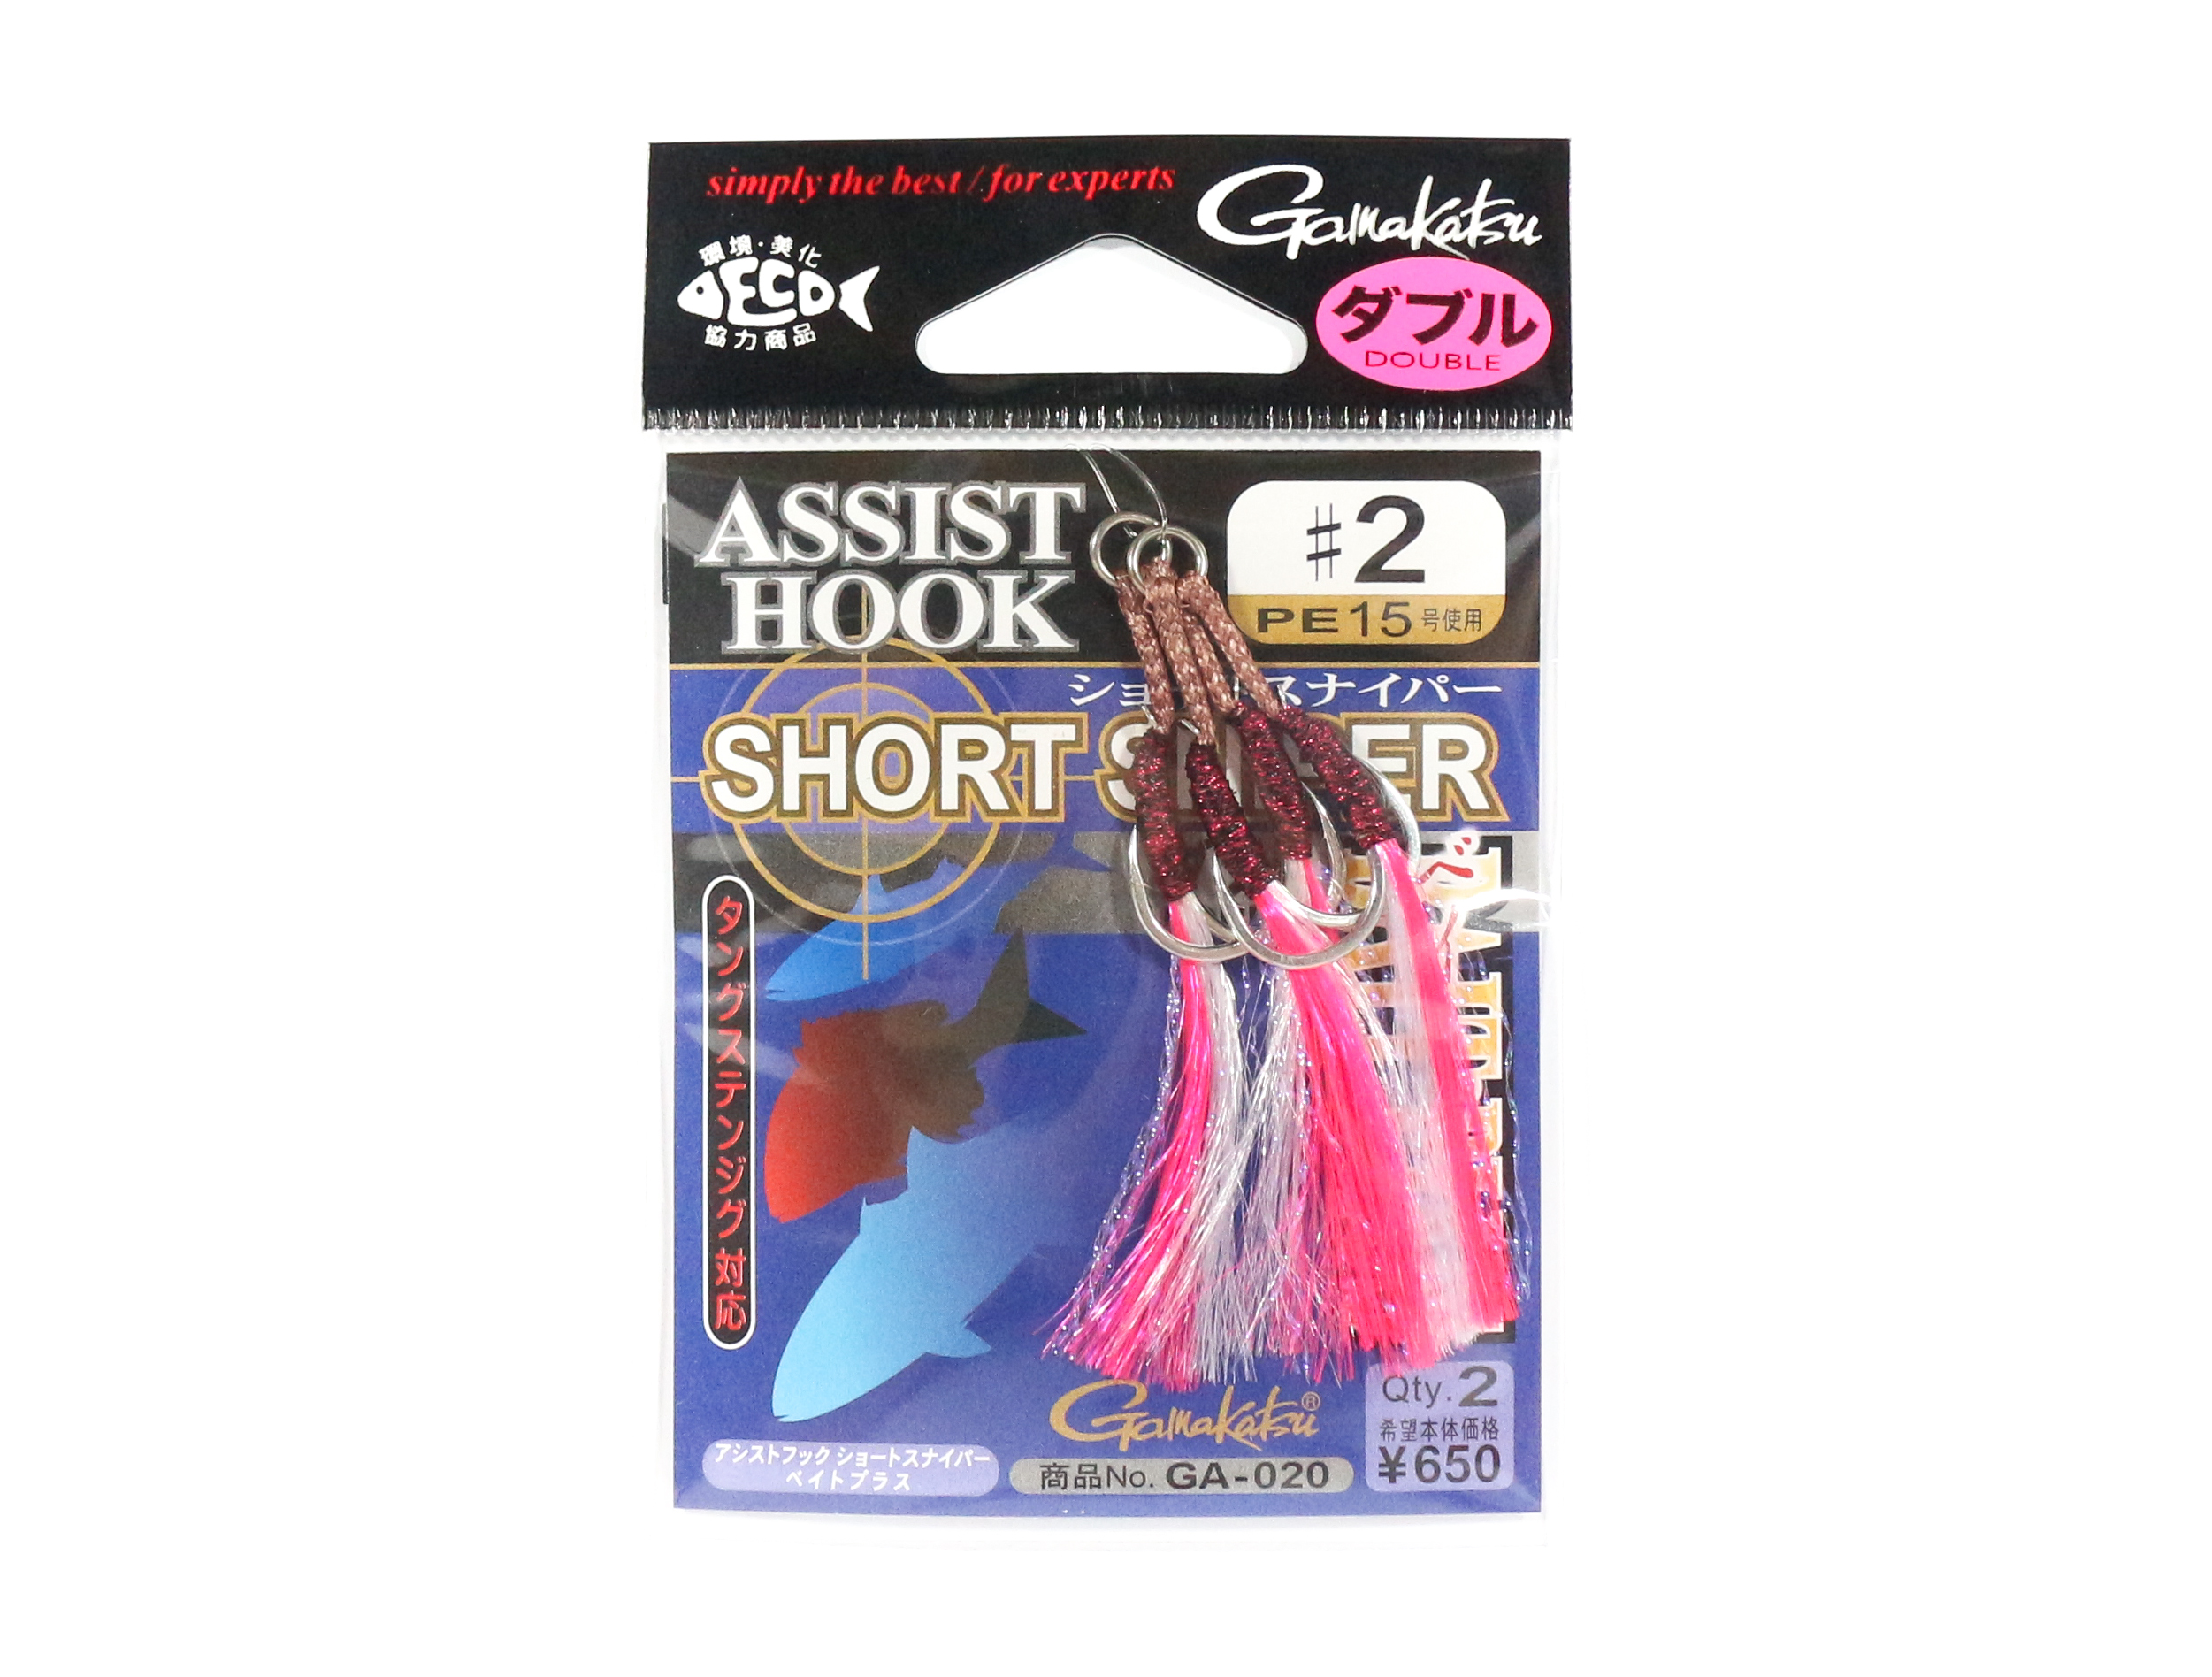 Gamakatsu GA-020 Assist Hook Short Sniper Double Size 2 ,2 Per pack (4179)